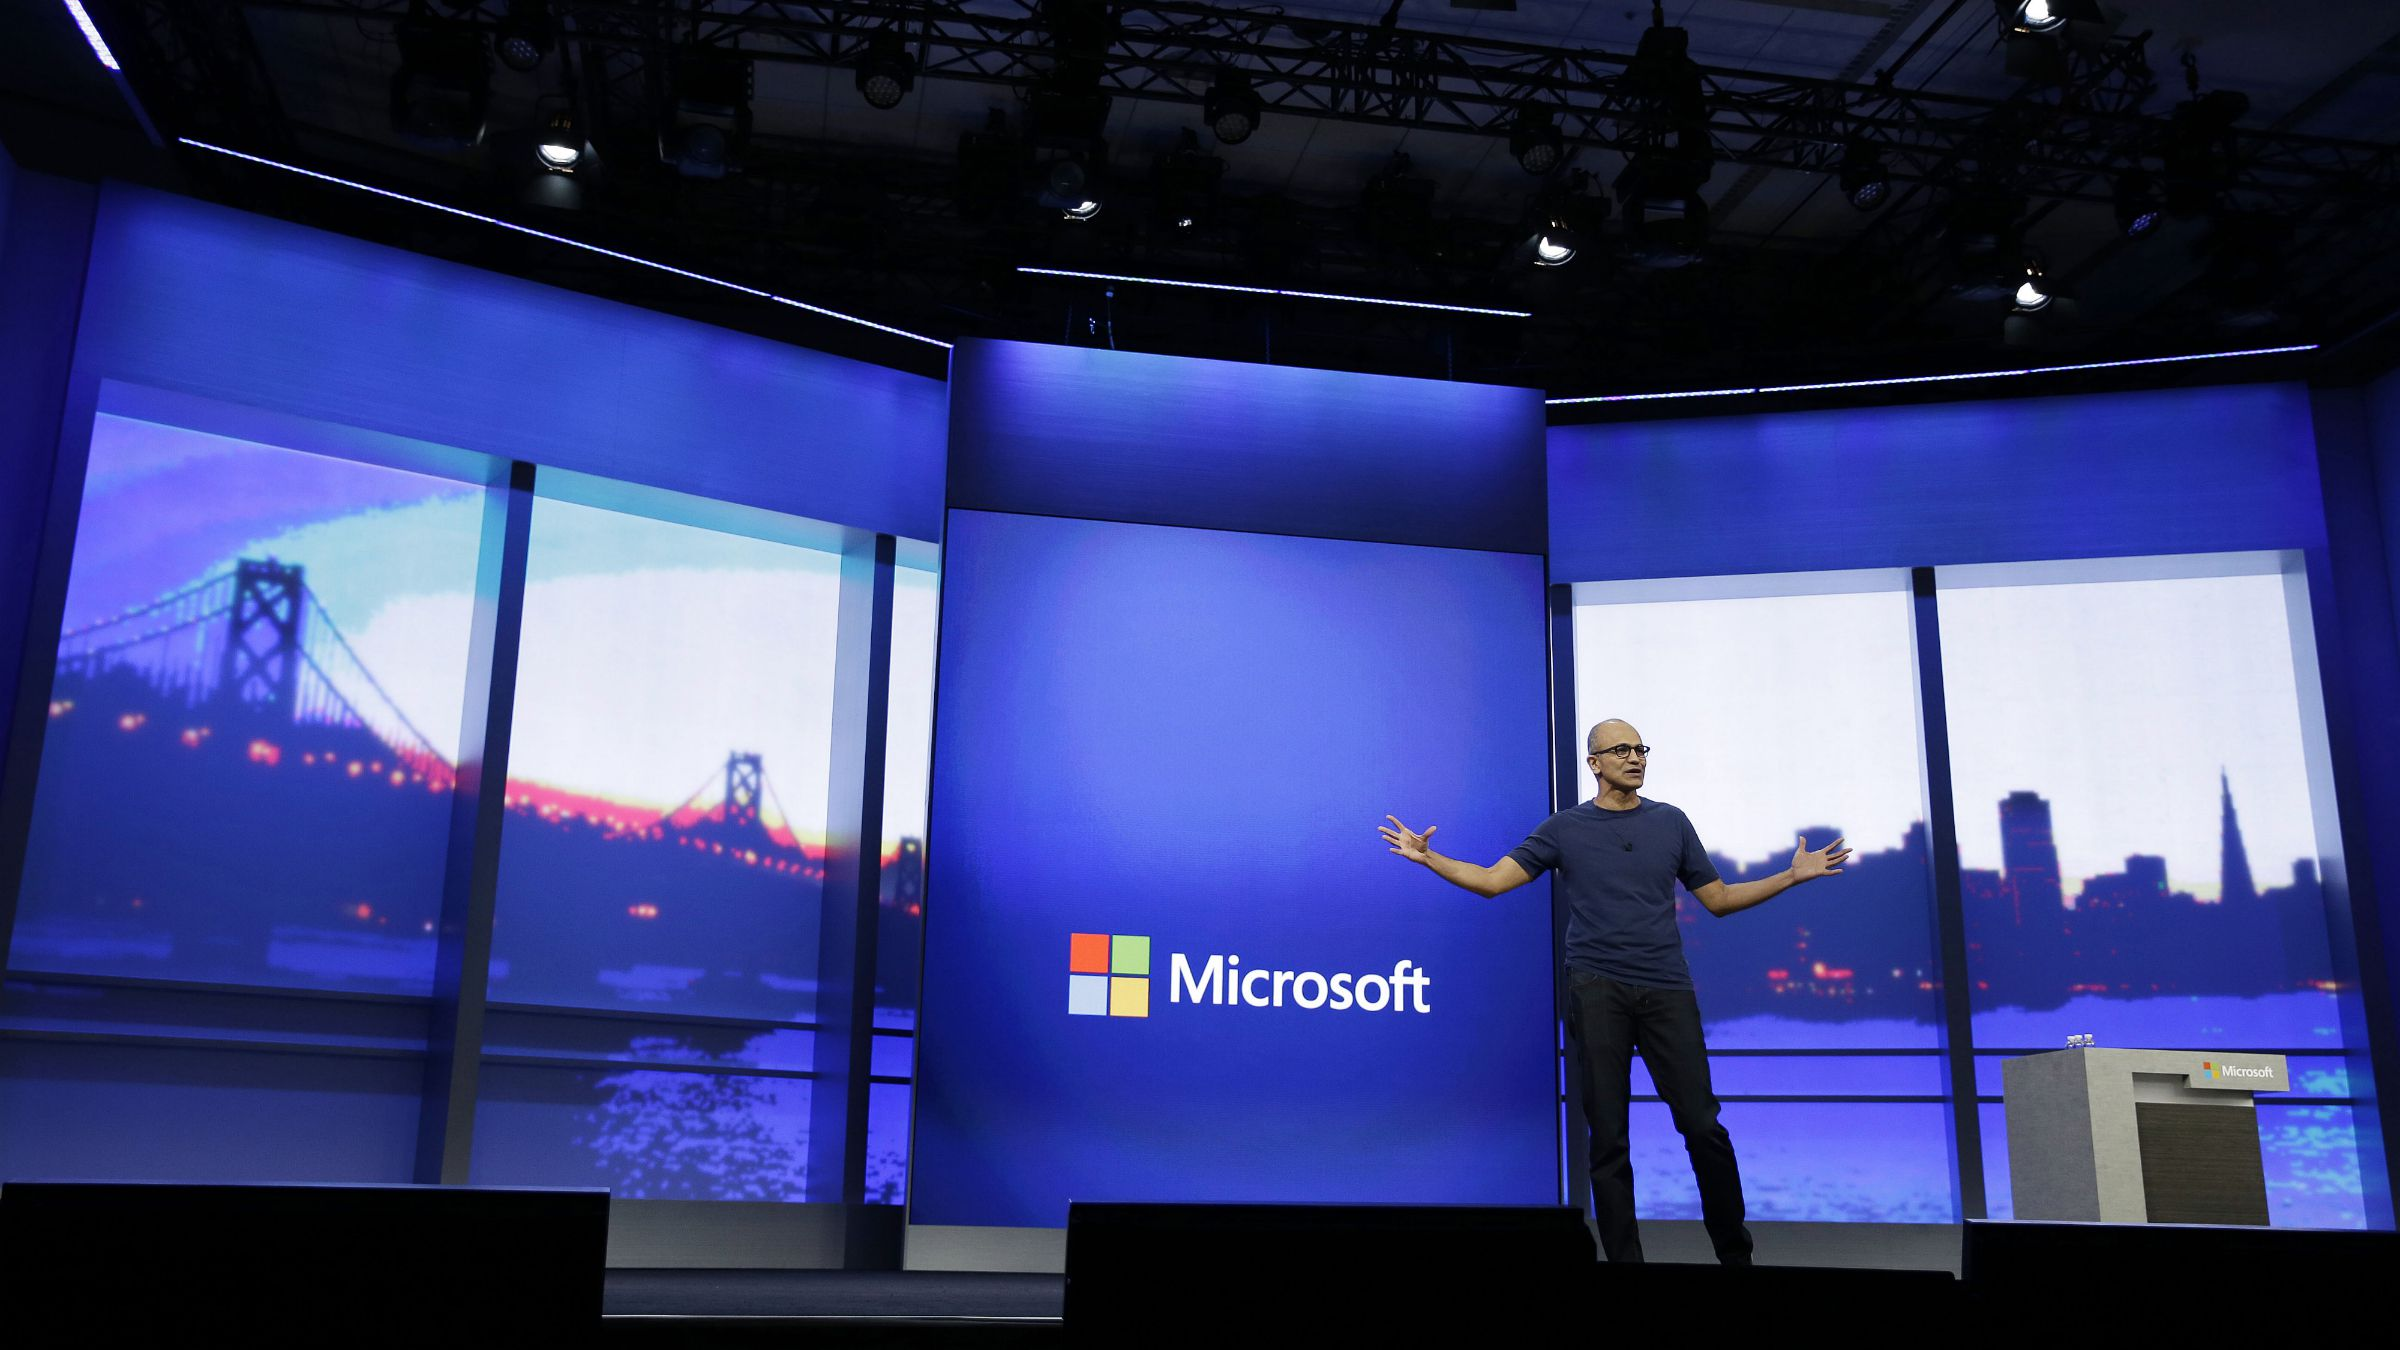 Microsoft CEO Satya Nadella gestures during the keynote address of the Build Conference Wednesday, April 2, 2014, in San Francisco.